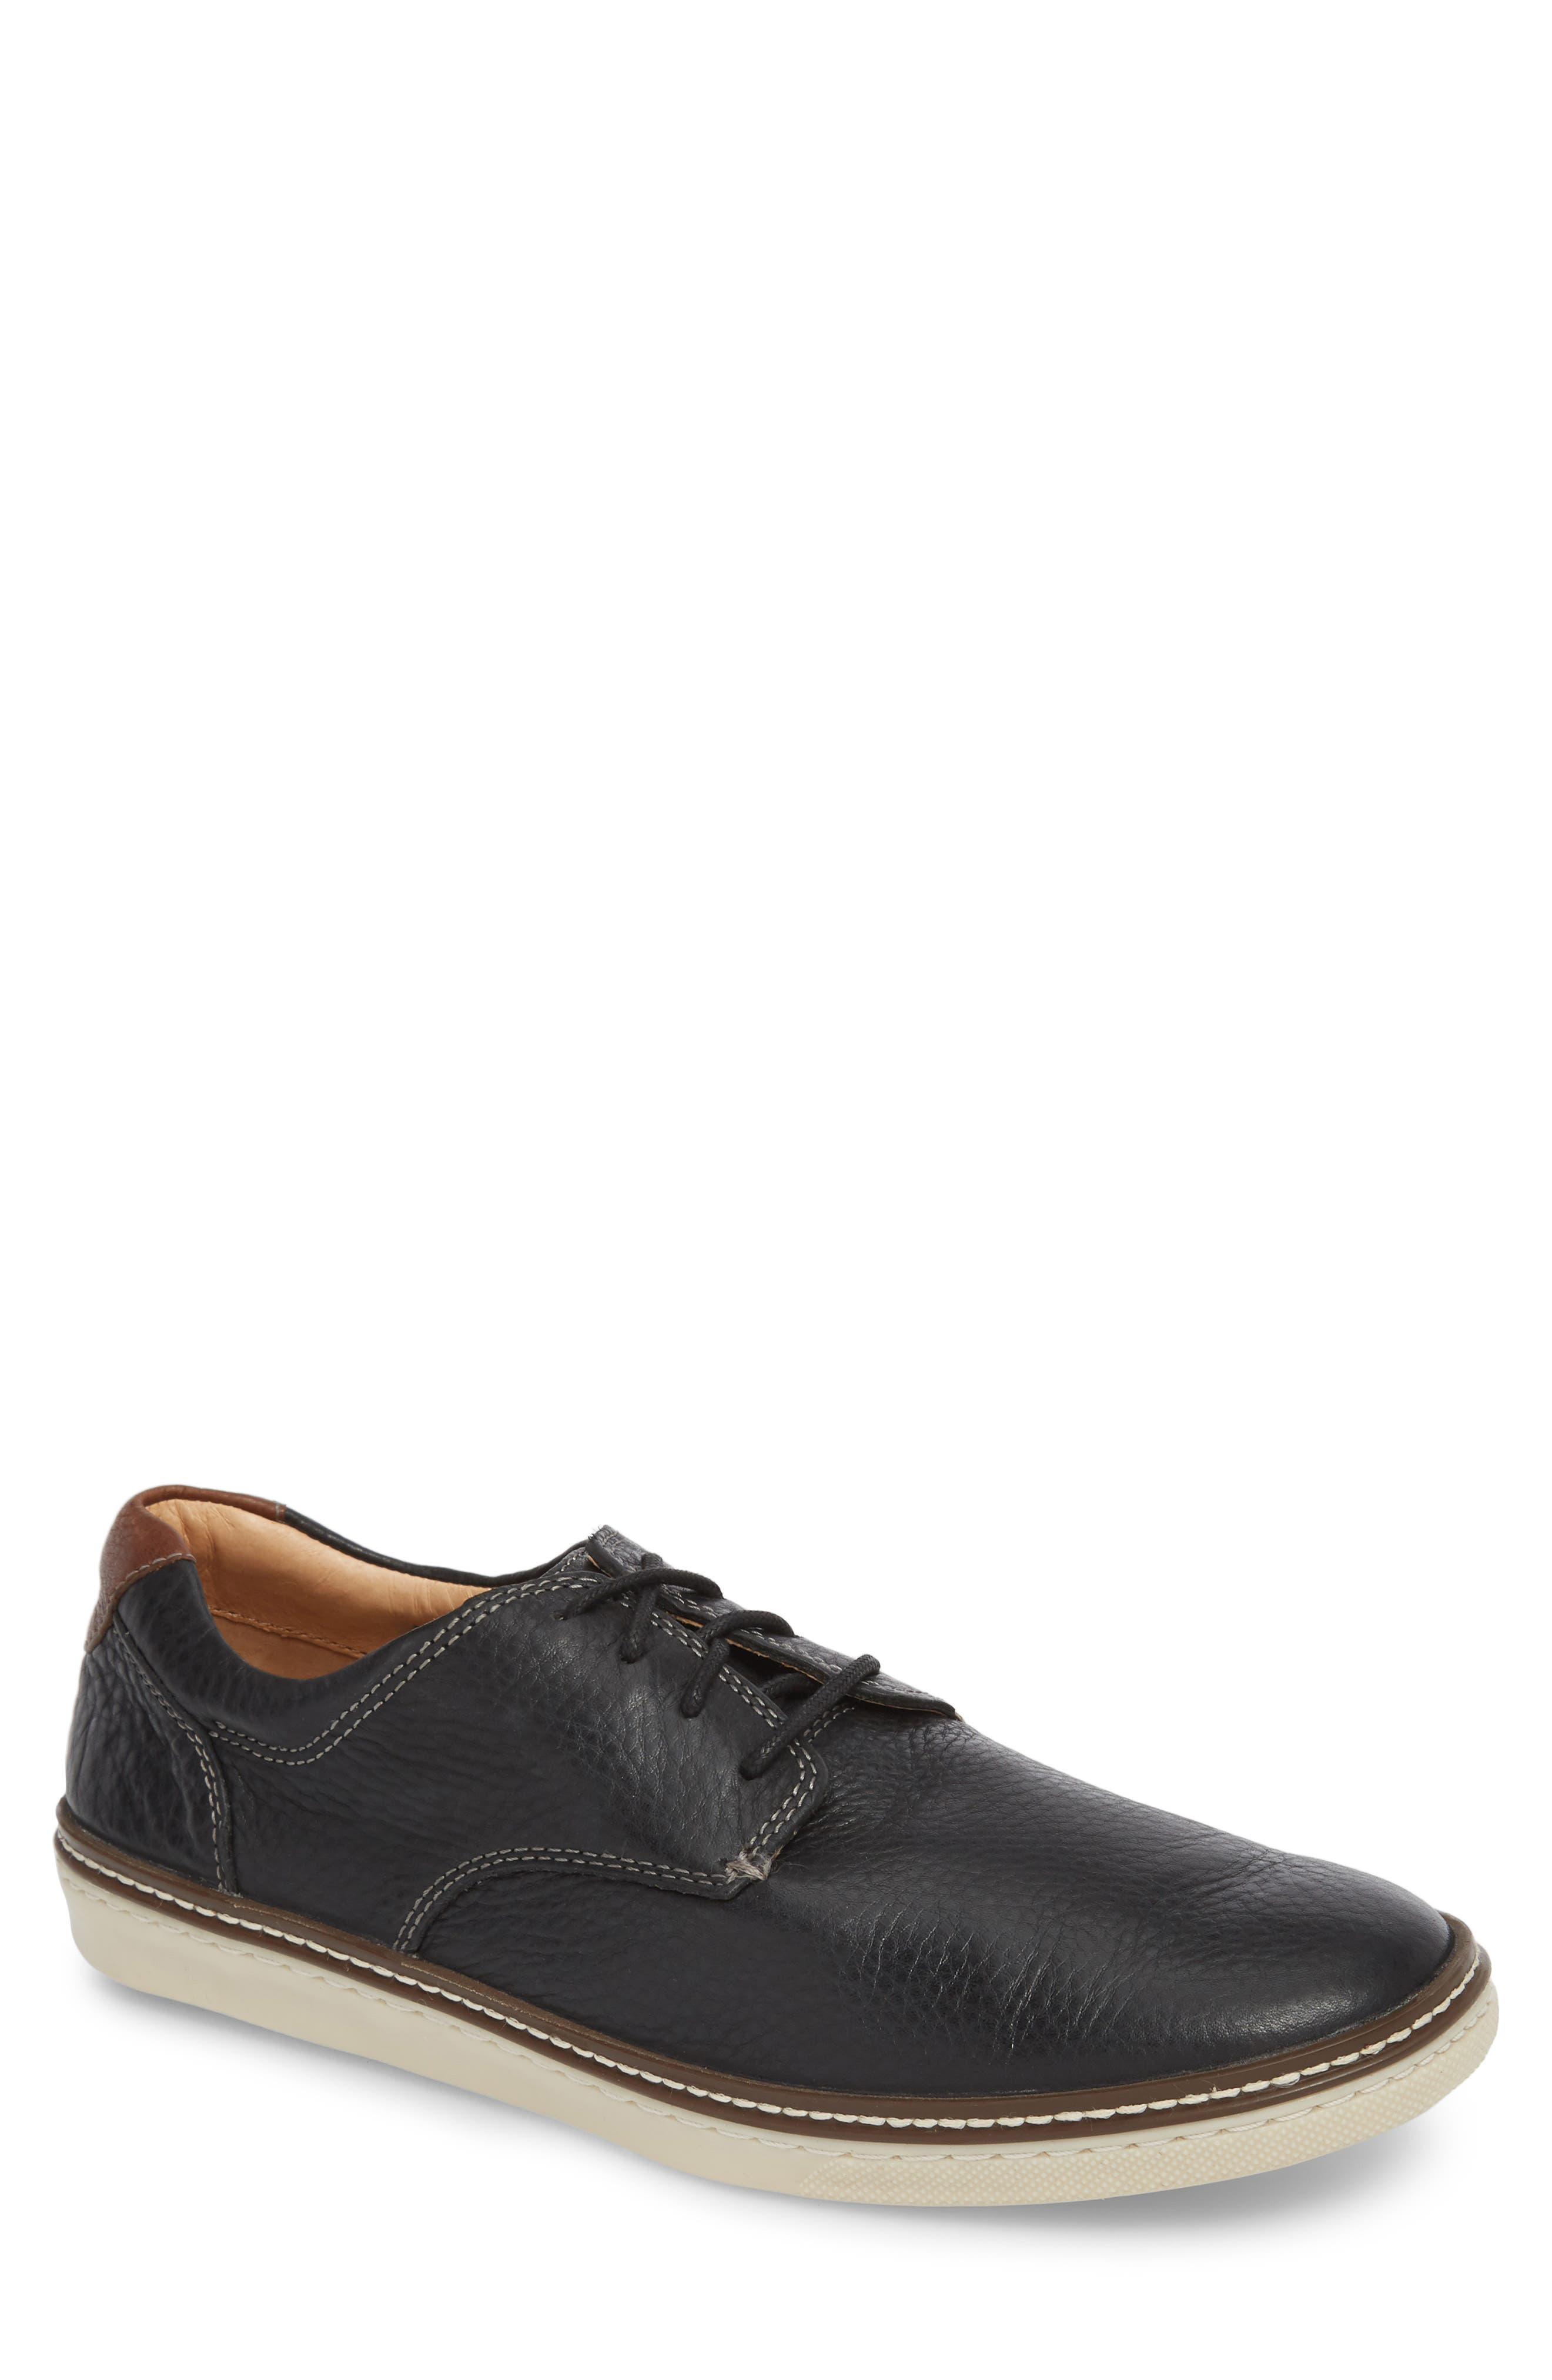 McGuffey Derby Sneaker,                             Main thumbnail 1, color,                             BLACK LEATHER